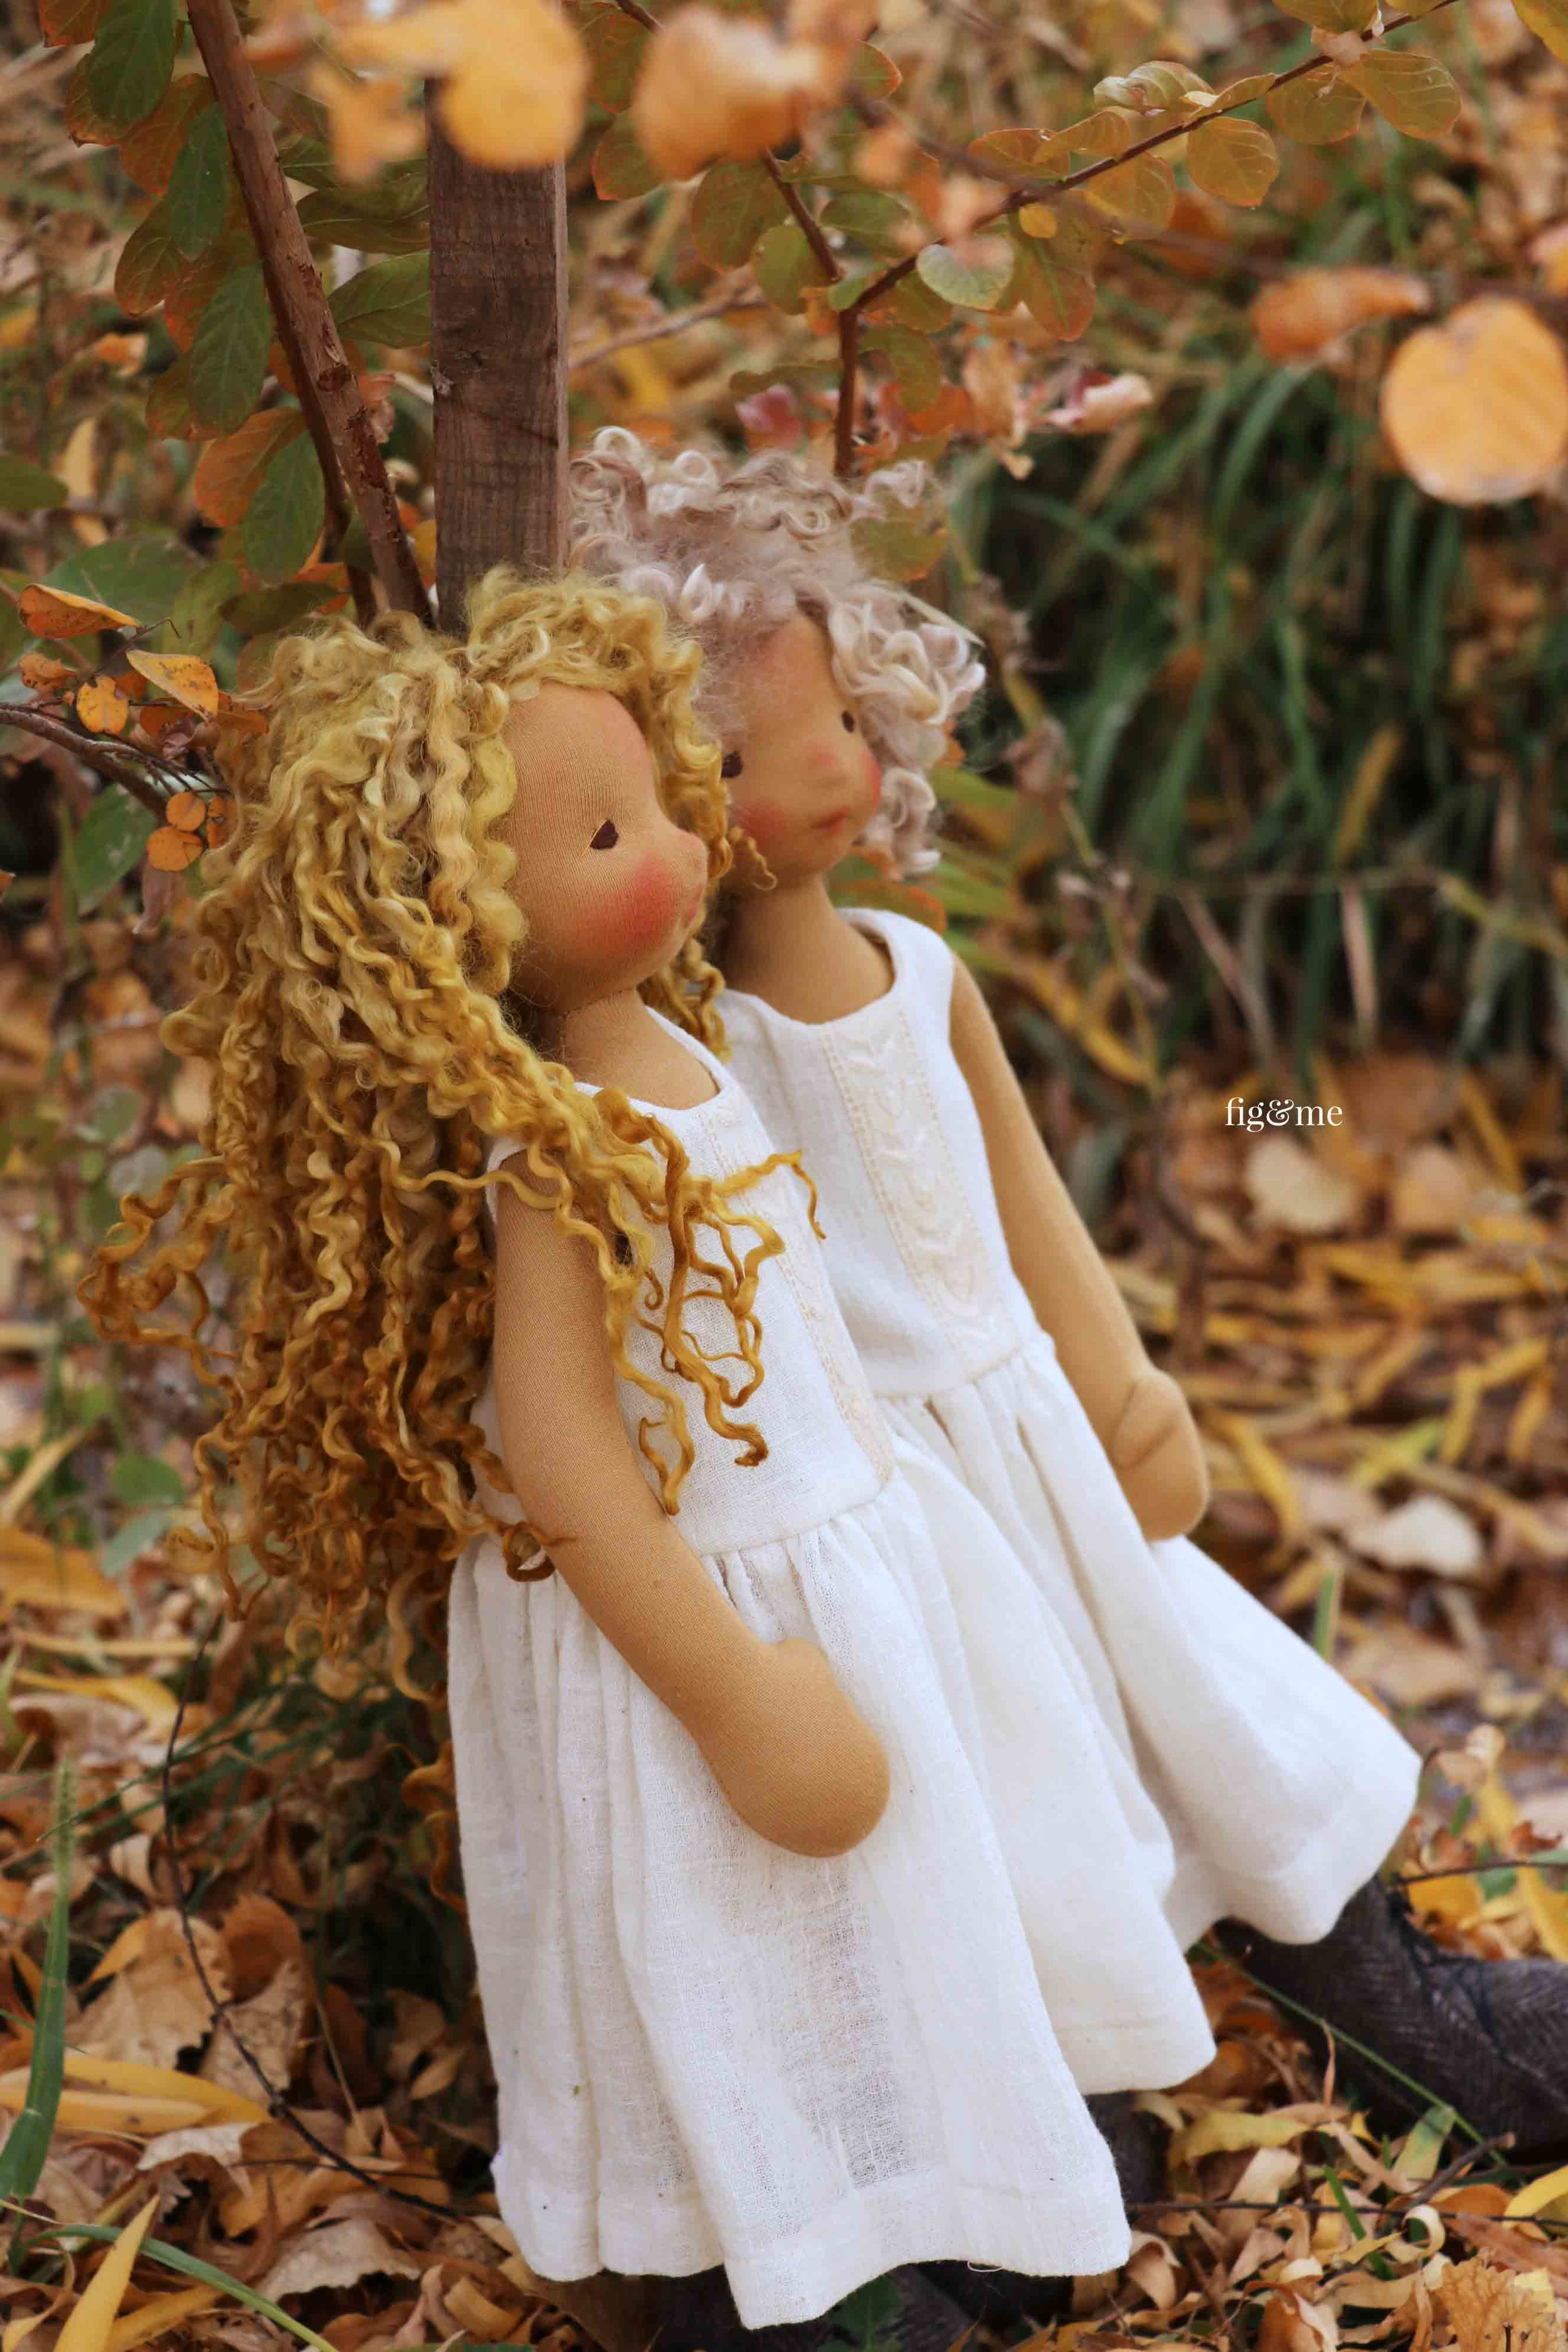 Mori and Winter, art dolls in the garden, by fig and me.